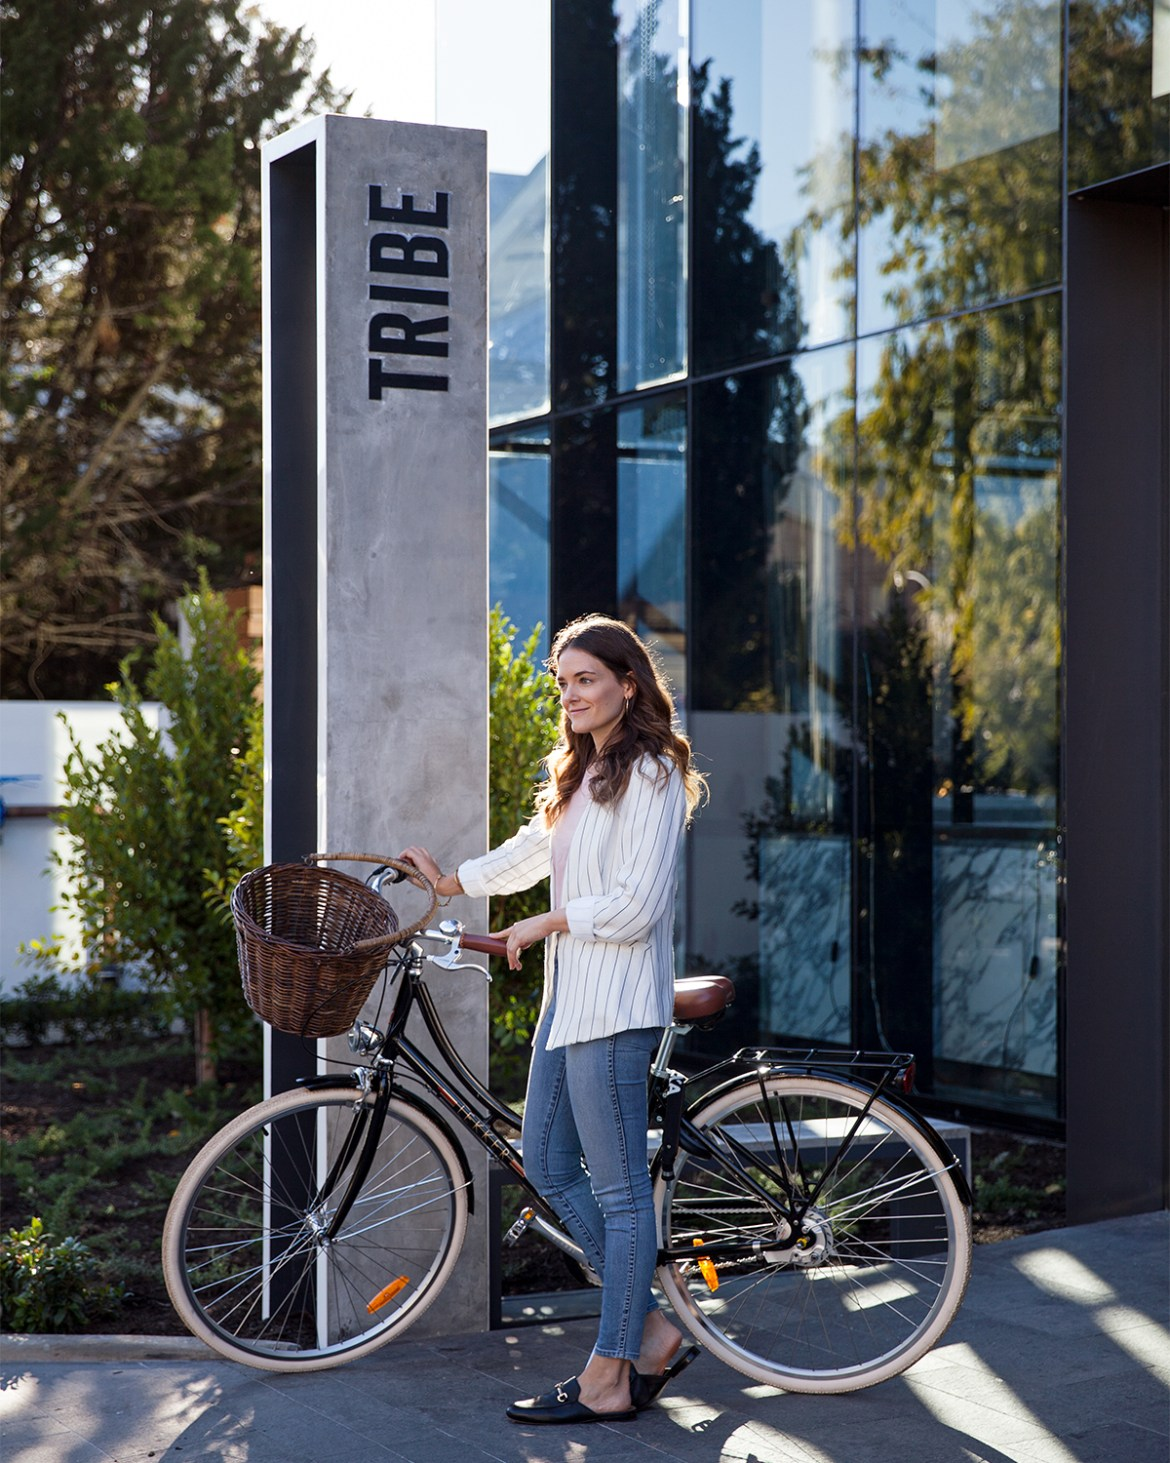 Tribe Hotel Perth Lekker loan bikes, Jenelle from travel blog Inspiring Wit hotel profile